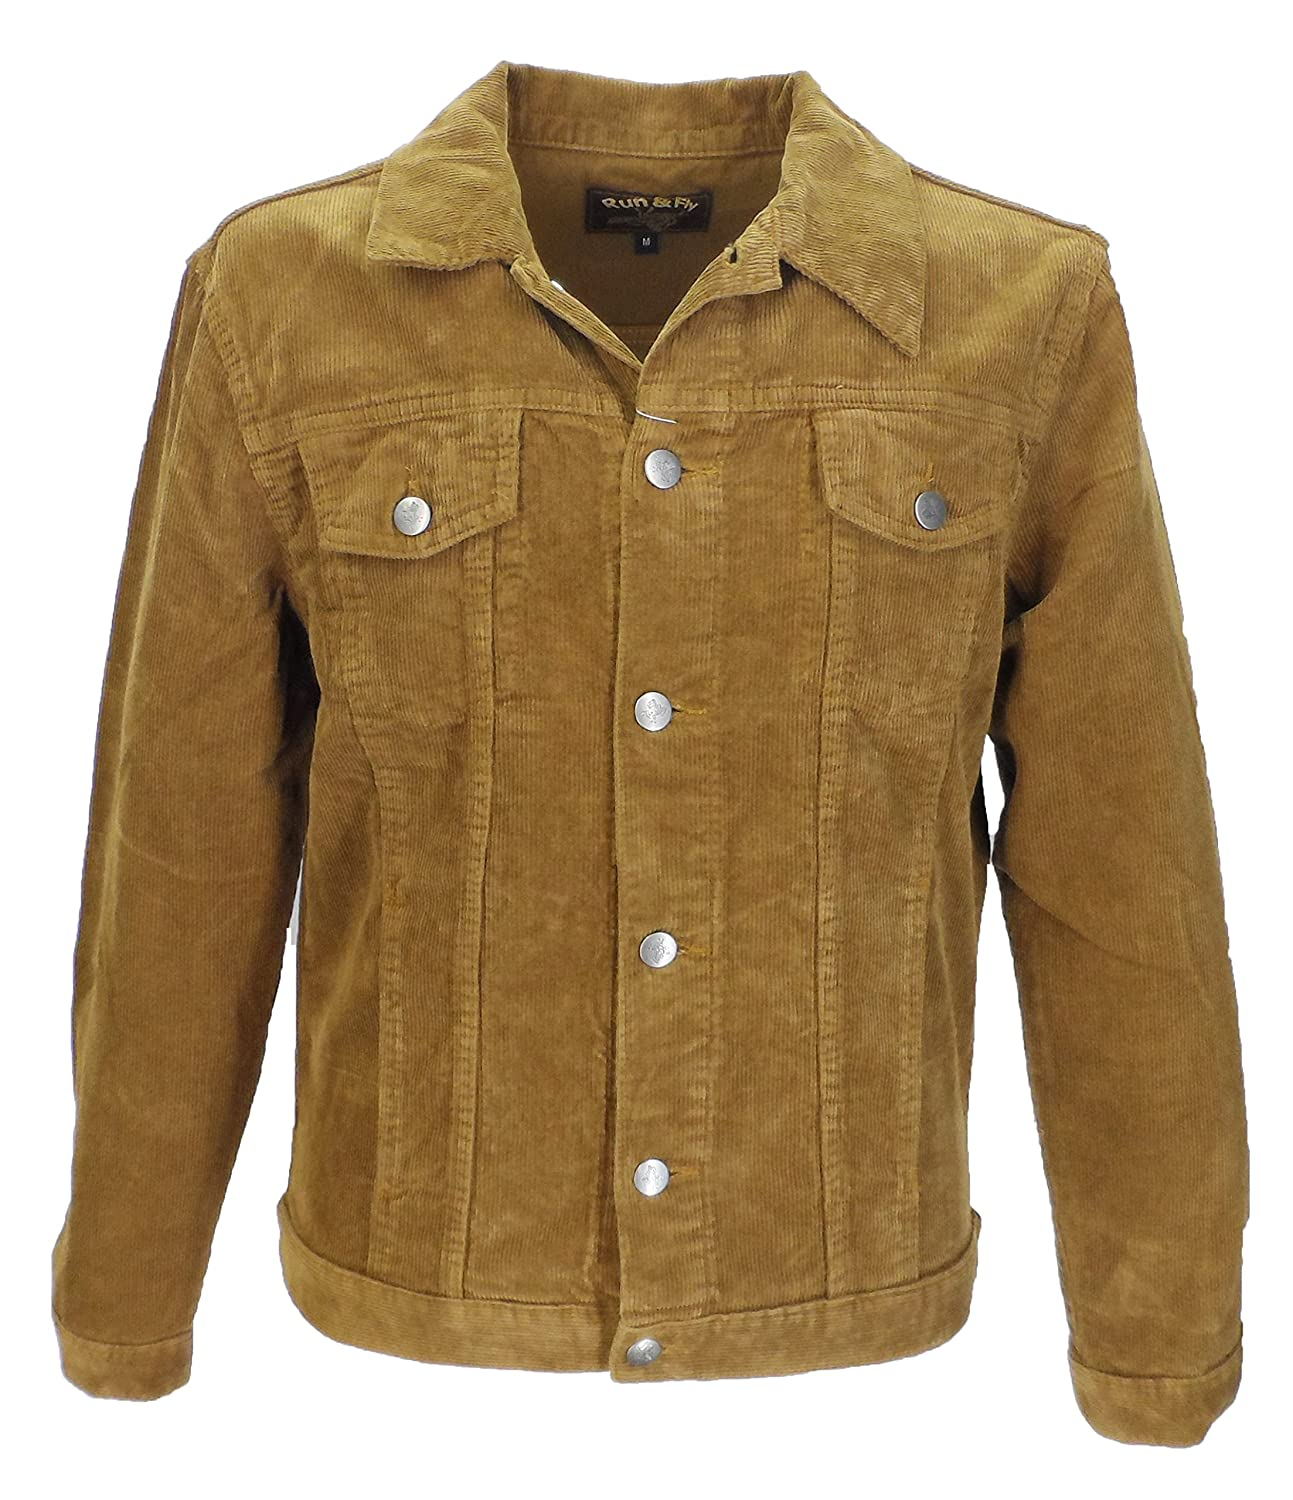 Brown Trucker Jacket Jackets Review